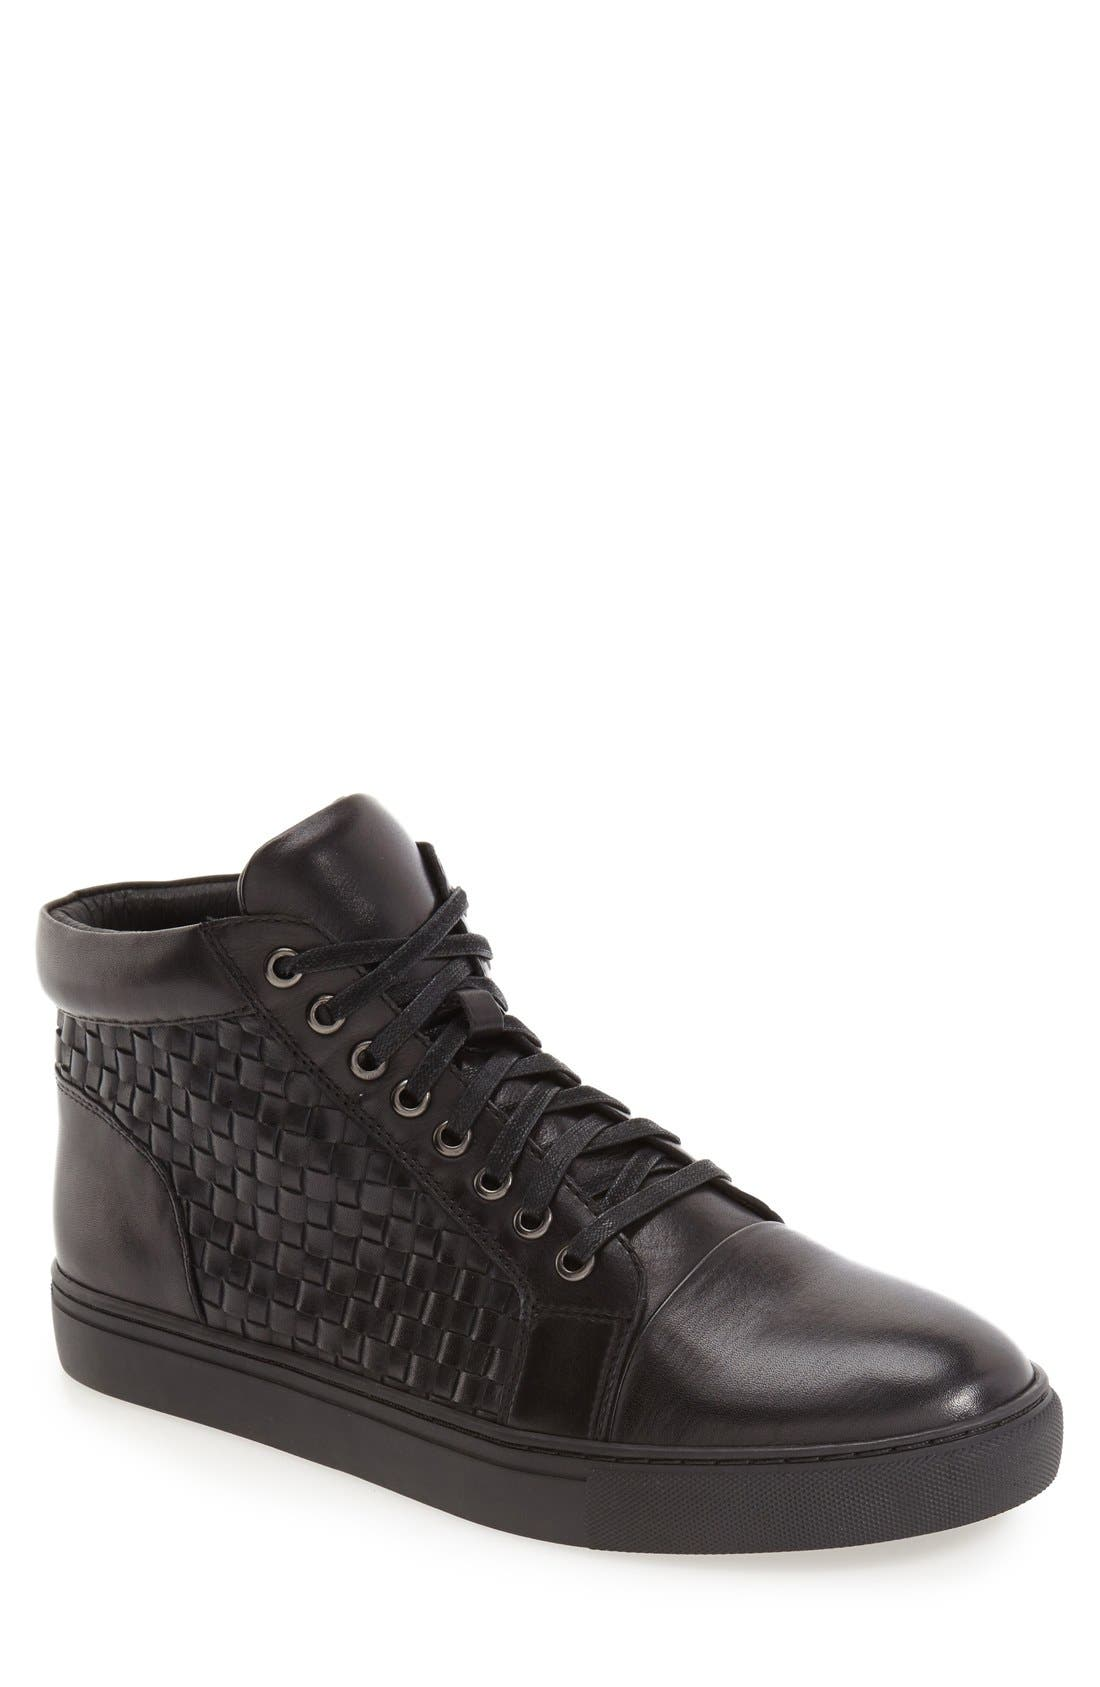 Alternate Image 1 Selected - Zanzara Soul High Top Sneaker (Men)